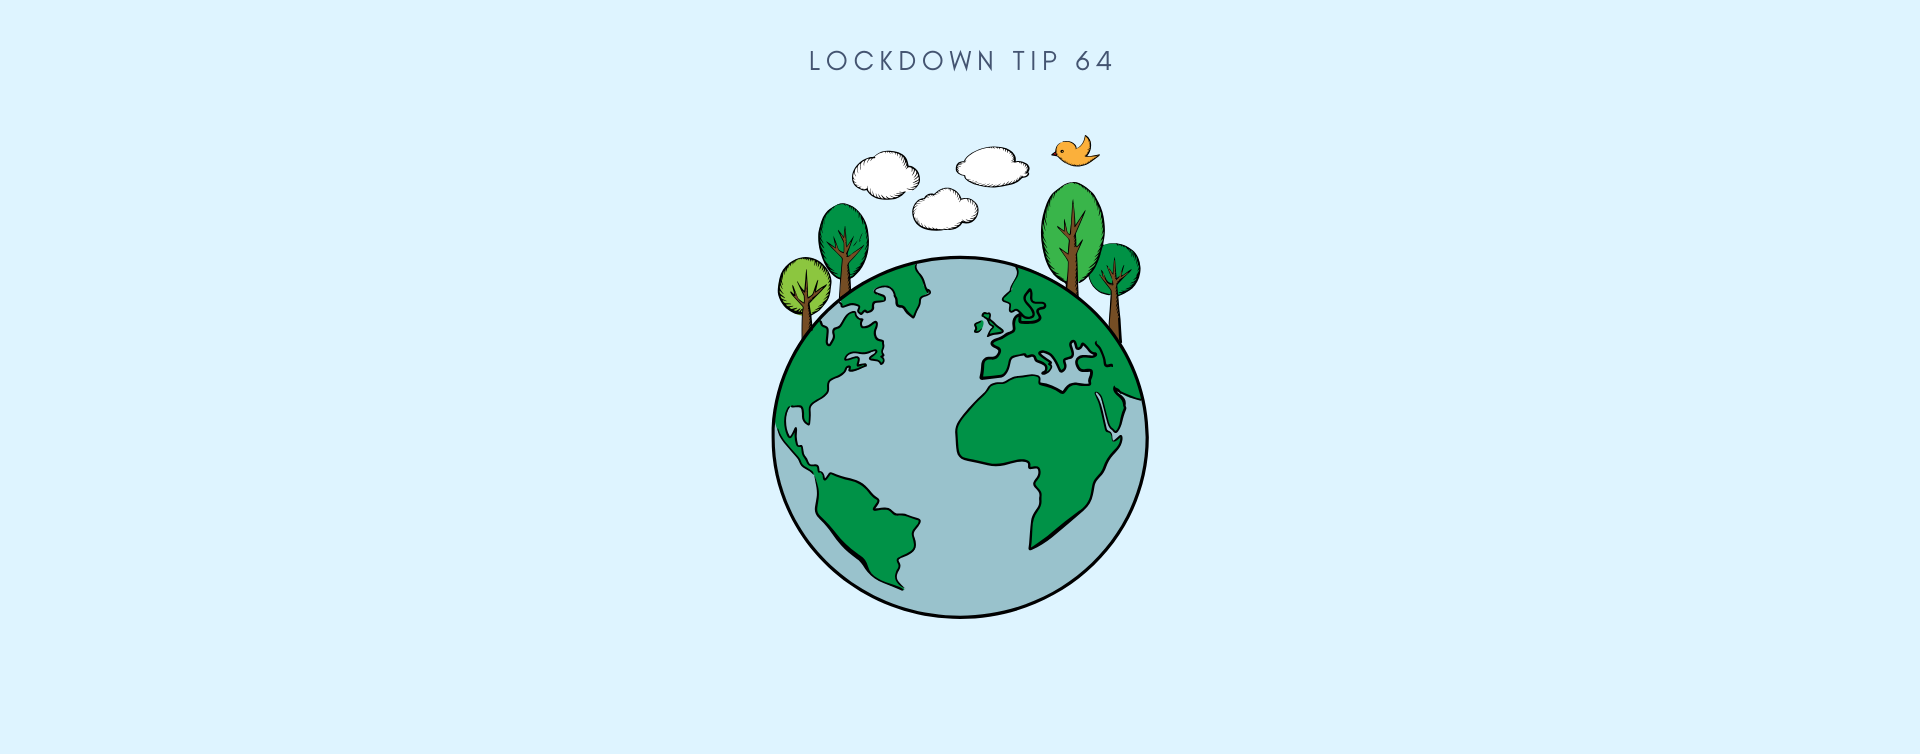 MCSA Lockdown Tip 64